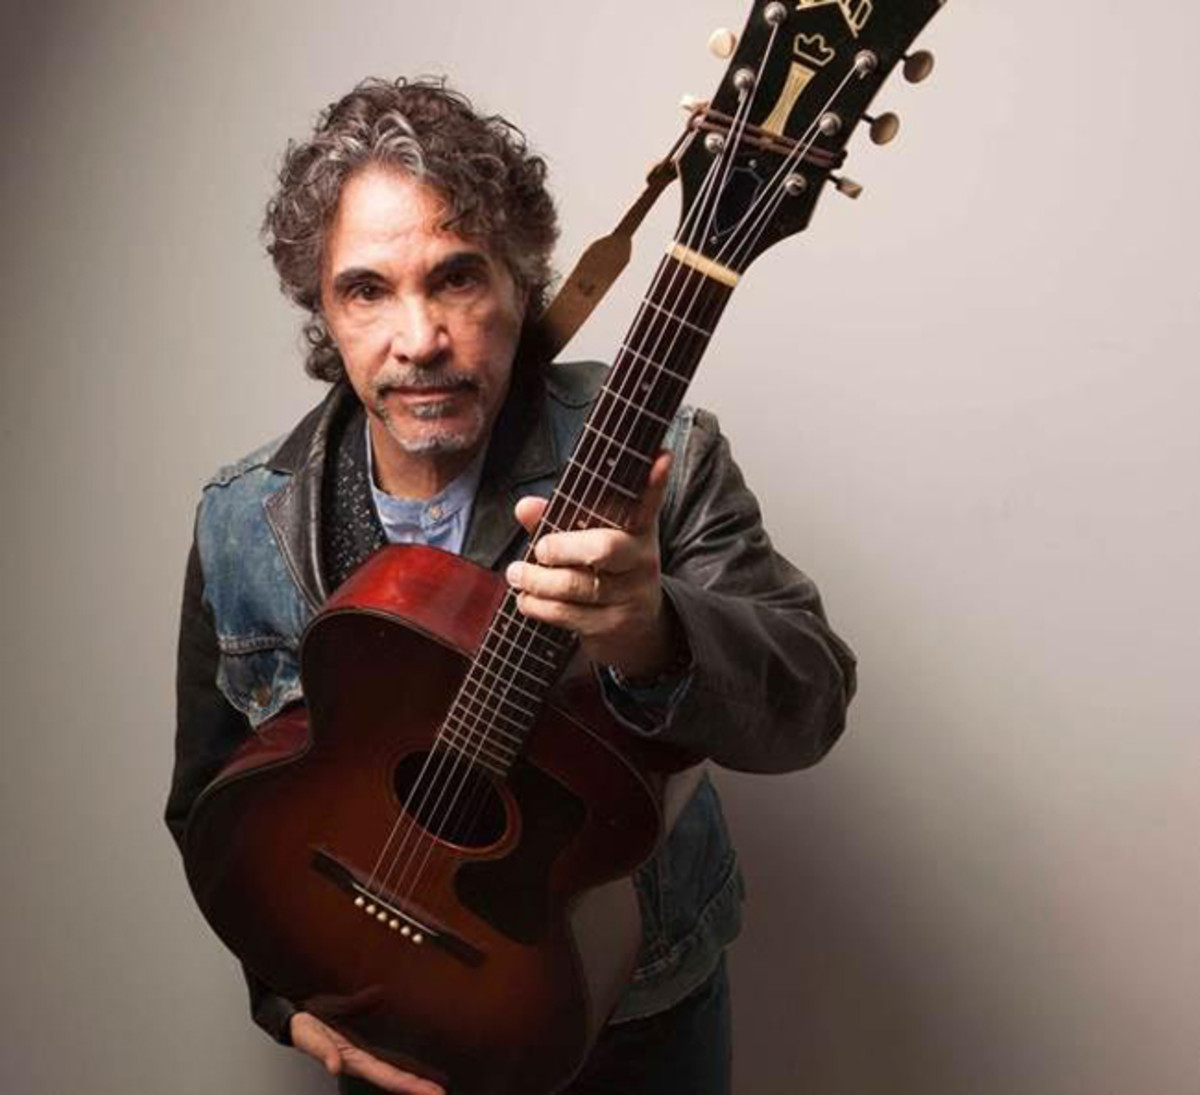 Rock and Roll Hall of Famer John Oates. Photo by Sean Hagwell, courtesy of John Oates